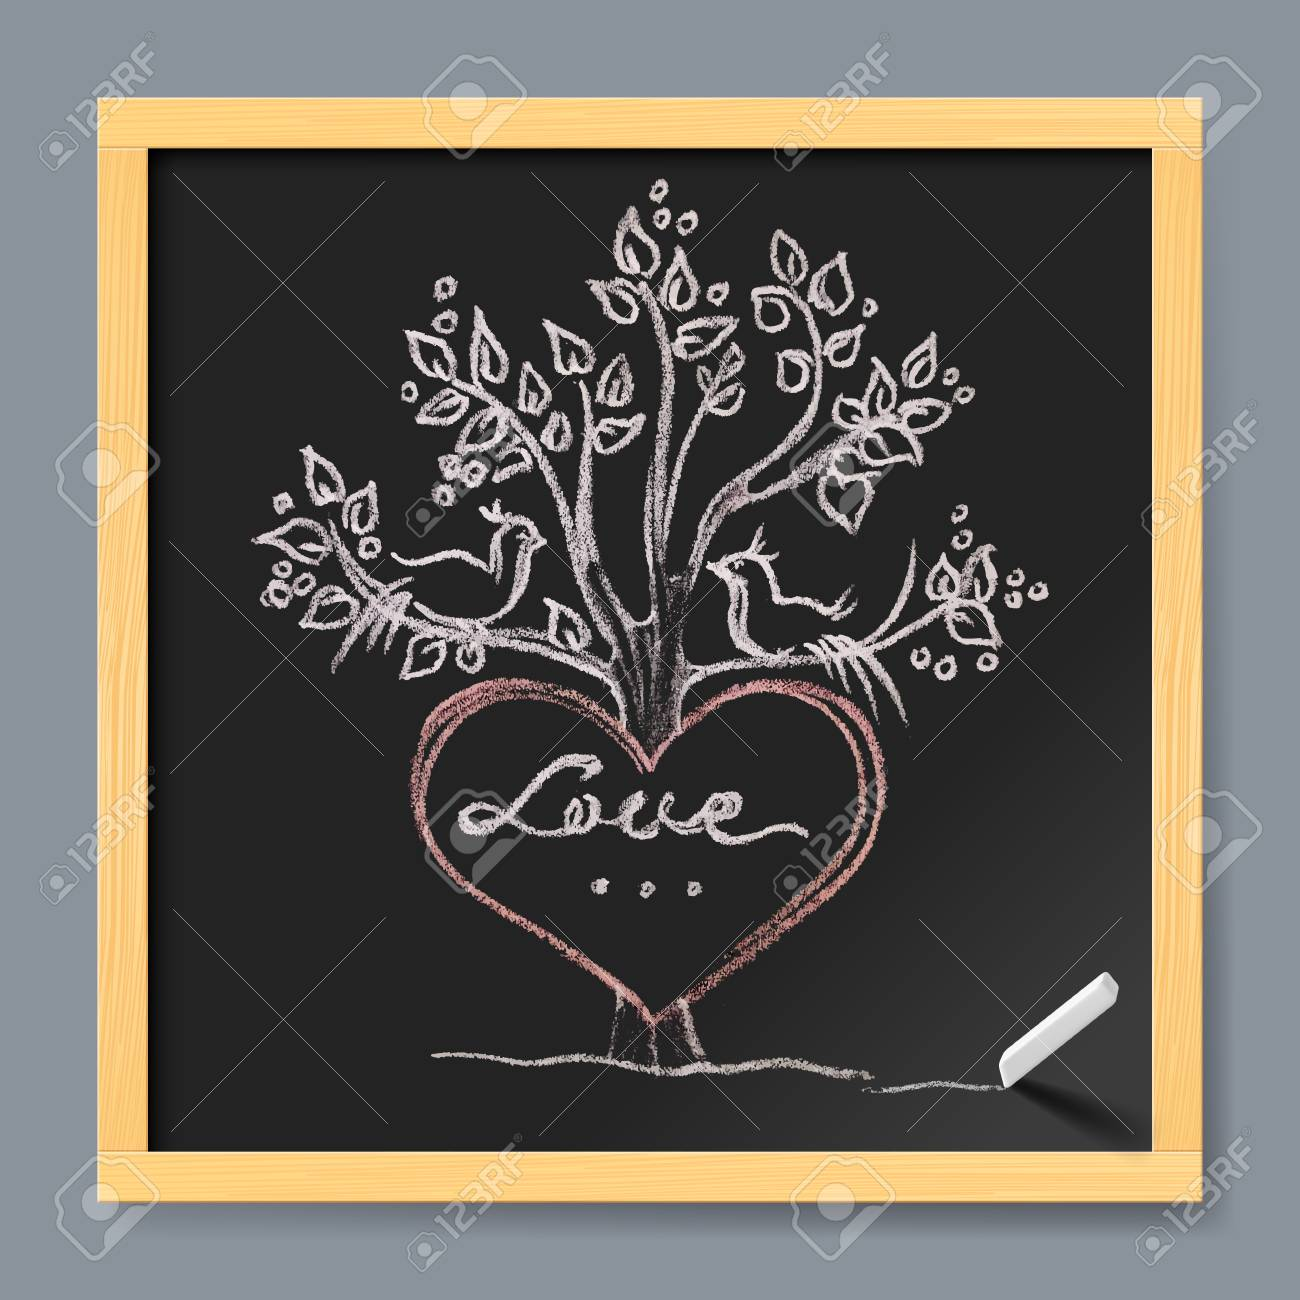 Drawing board greeting cards image collections greeting card examples valentines day greeting card hand drawn heart tree and birds valentines day greeting card hand drawn kristyandbryce Choice Image